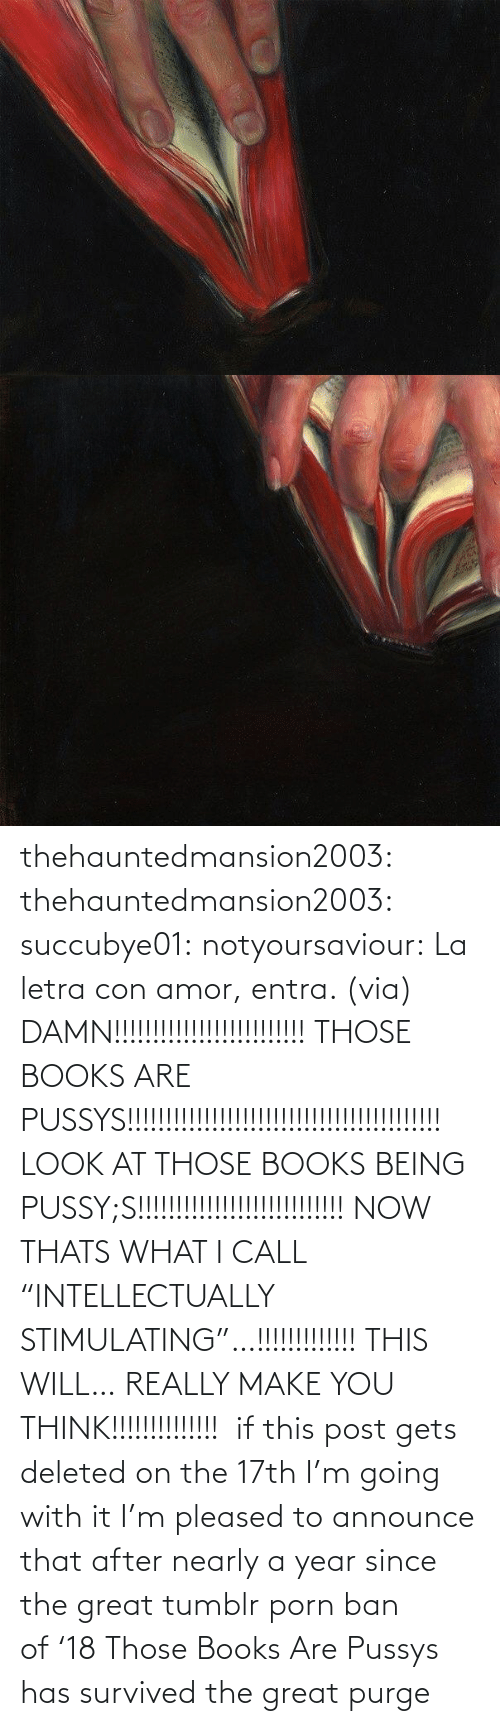 "Books, Facebook, and Tumblr: thehauntedmansion2003: thehauntedmansion2003:  succubye01:  notyoursaviour:  La letra con amor, entra. (via)  DAMN!!!!!!!!!!!!!!!!!!!!!!!!! THOSE BOOKS ARE PUSSYS!!!!!!!!!!!!!!!!!!!!!!!!!!!!!!!!!!!!!!!!! LOOK AT THOSE BOOKS BEING PUSSY;S!!!!!!!!!!!!!!!!!!!!!!!!!!! NOW THATS WHAT I CALL ""INTELLECTUALLY STIMULATING""…!!!!!!!!!!!!! THIS WILL… REALLY MAKE YOU THINK!!!!!!!!!!!!!!   if this post gets deleted on the 17th I'm going with it  I'm pleased to announce that after nearly a year since the great tumblr porn ban of '18 Those Books Are Pussys has survived the great purge"